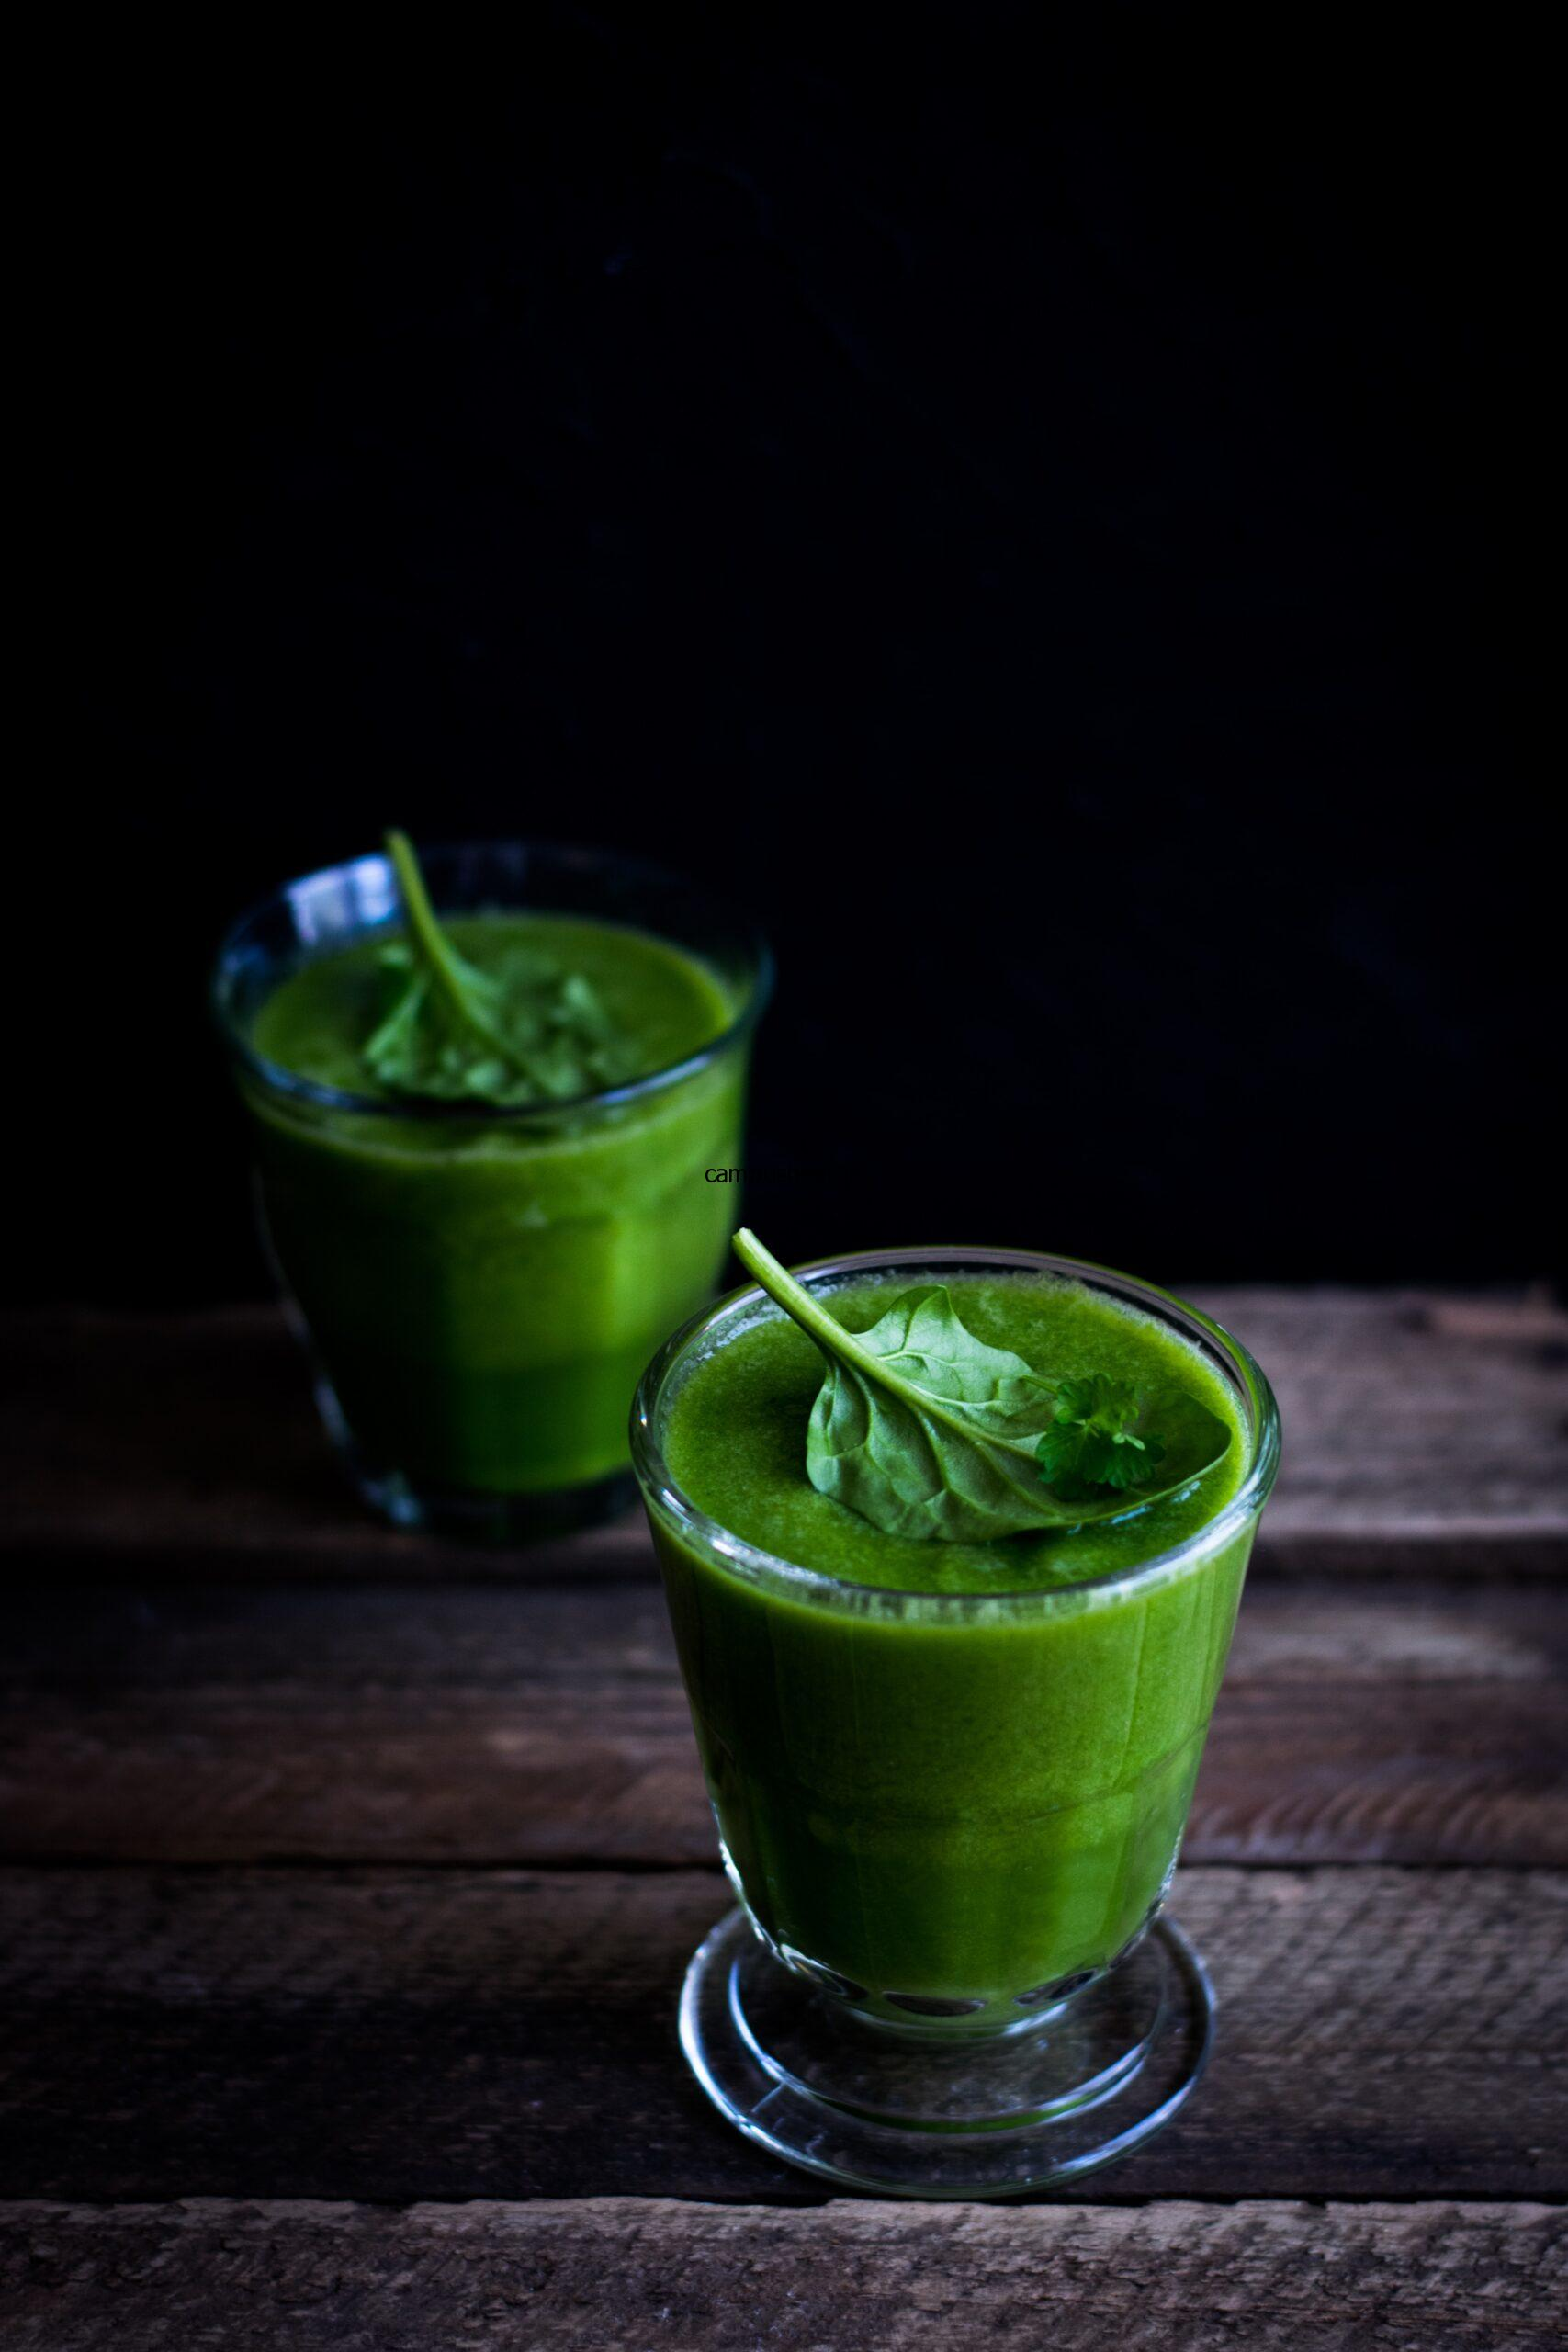 Glorify yourself with Green Smoothie